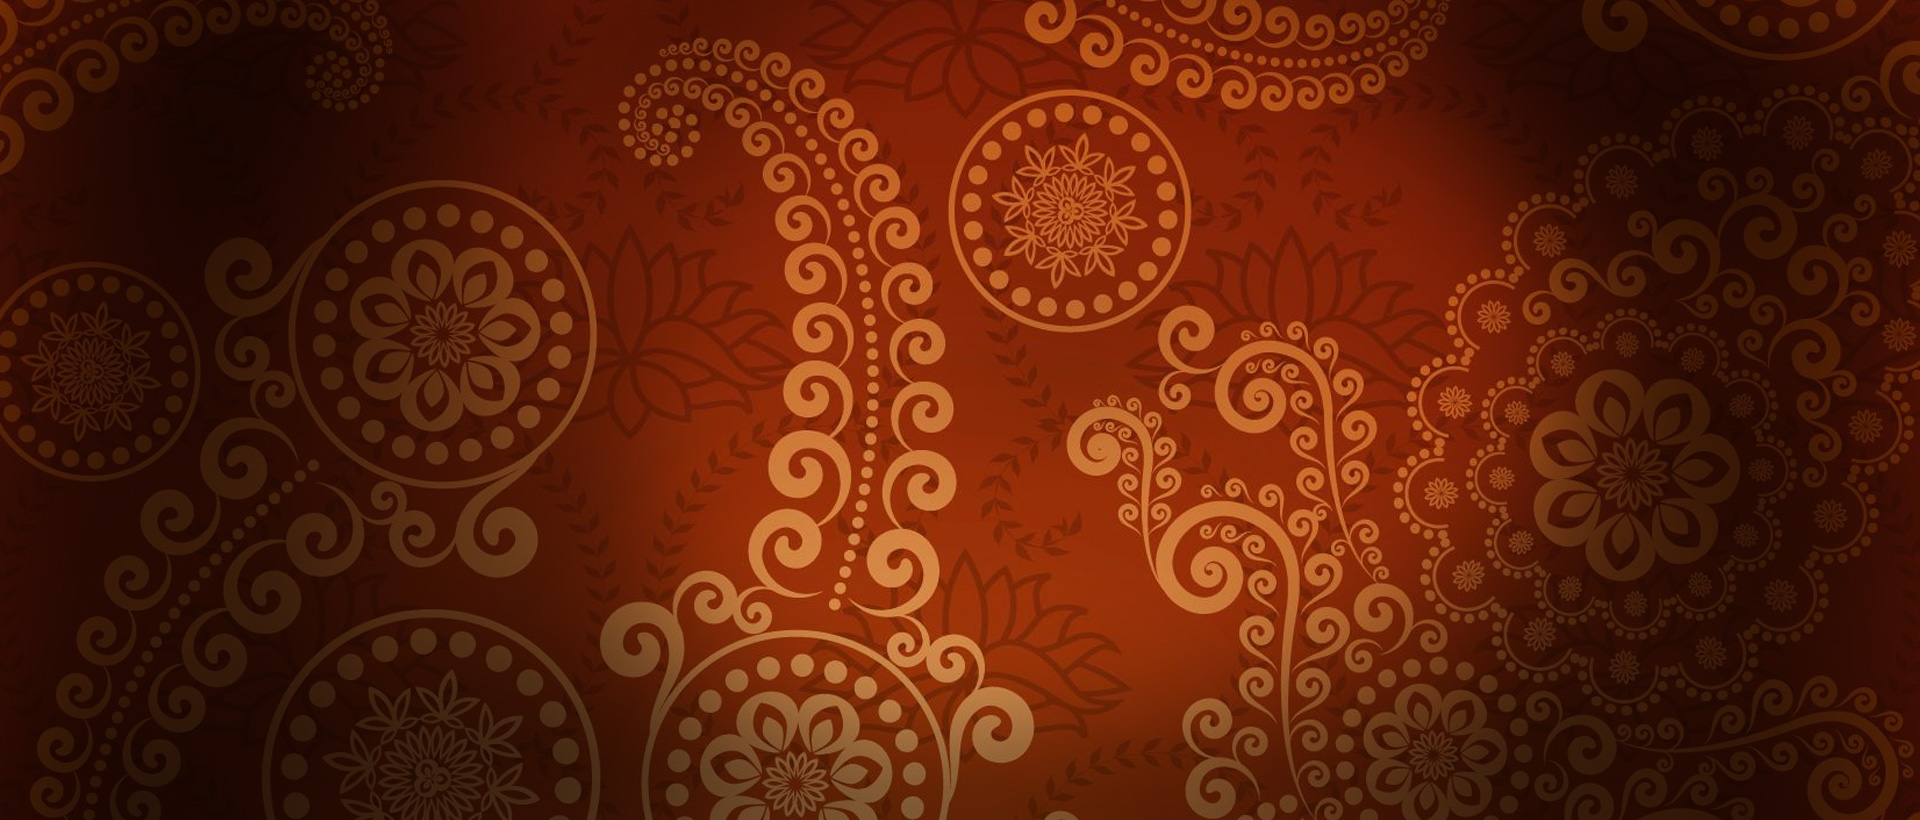 Indian Wedding Invitation Background Designs Hd ~ Matik for